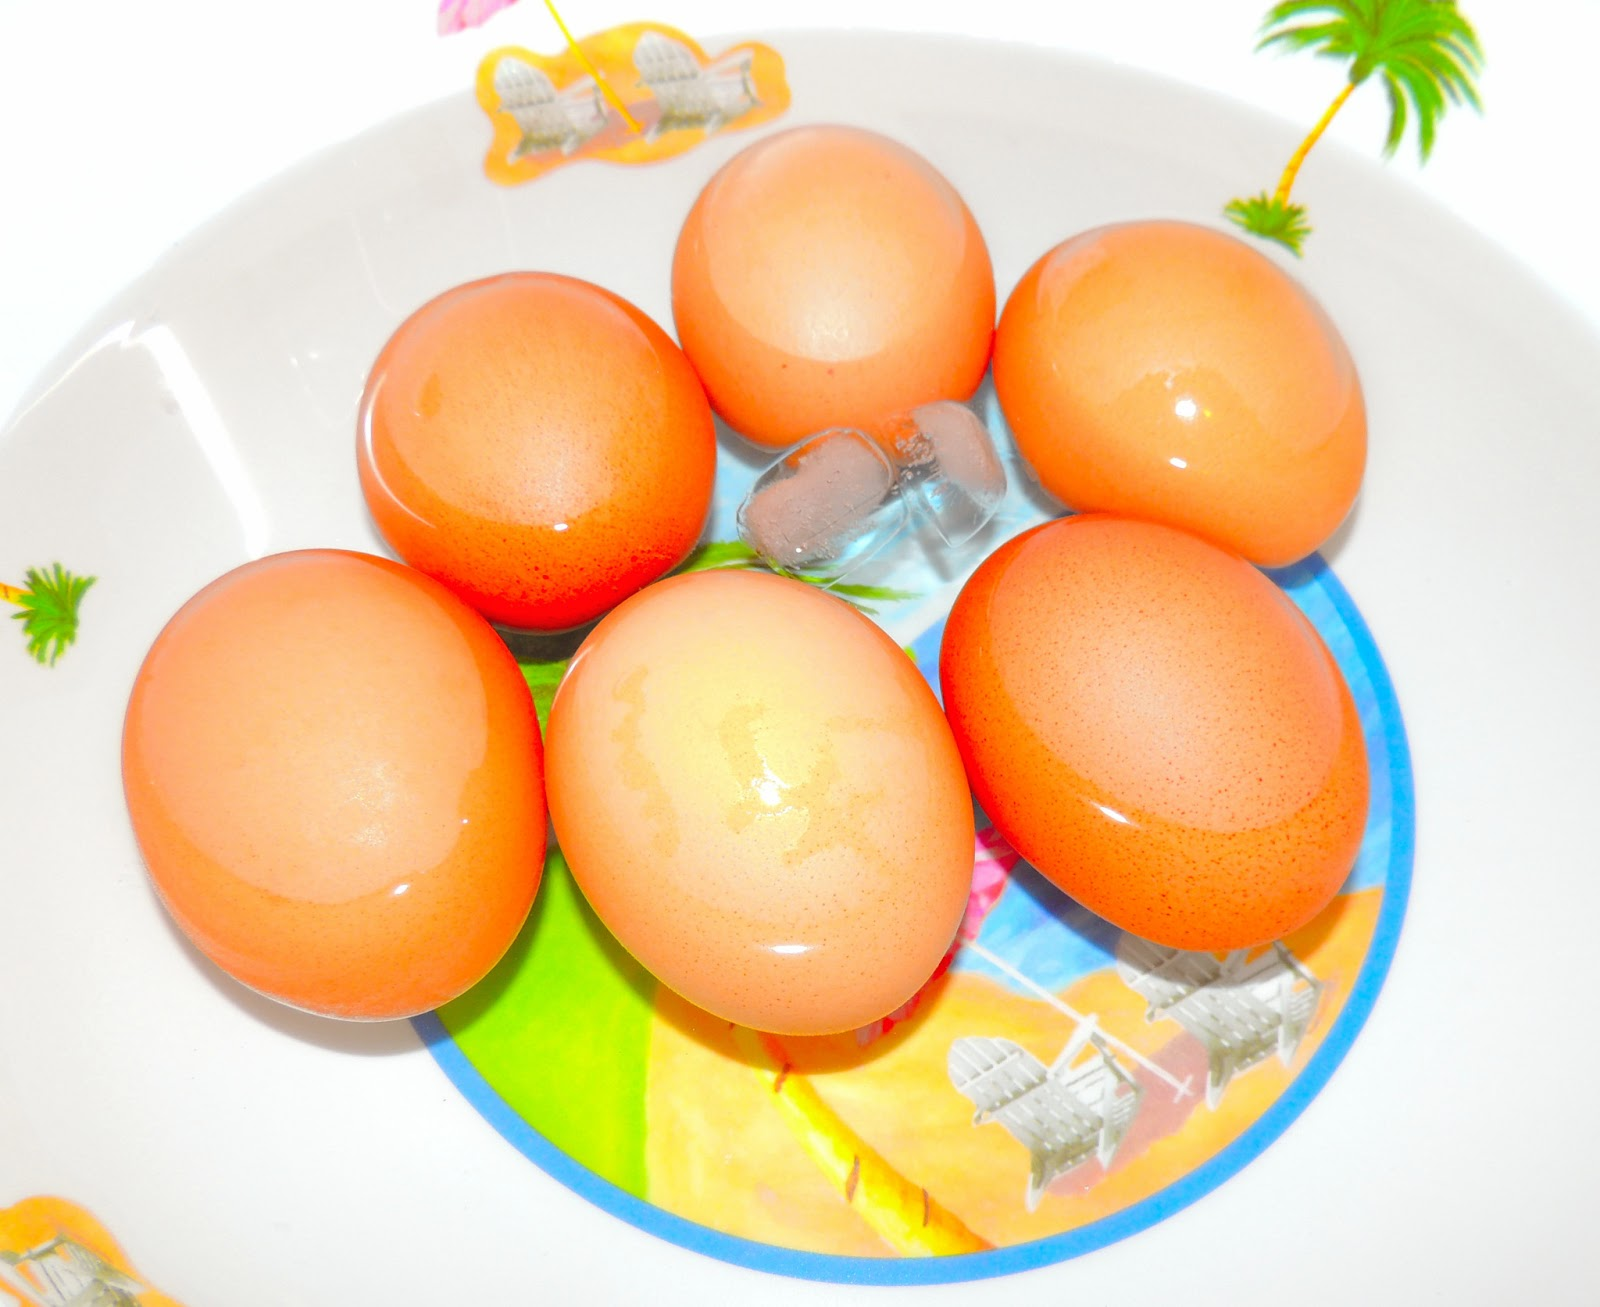 how to cook hard boiled eggs on stove